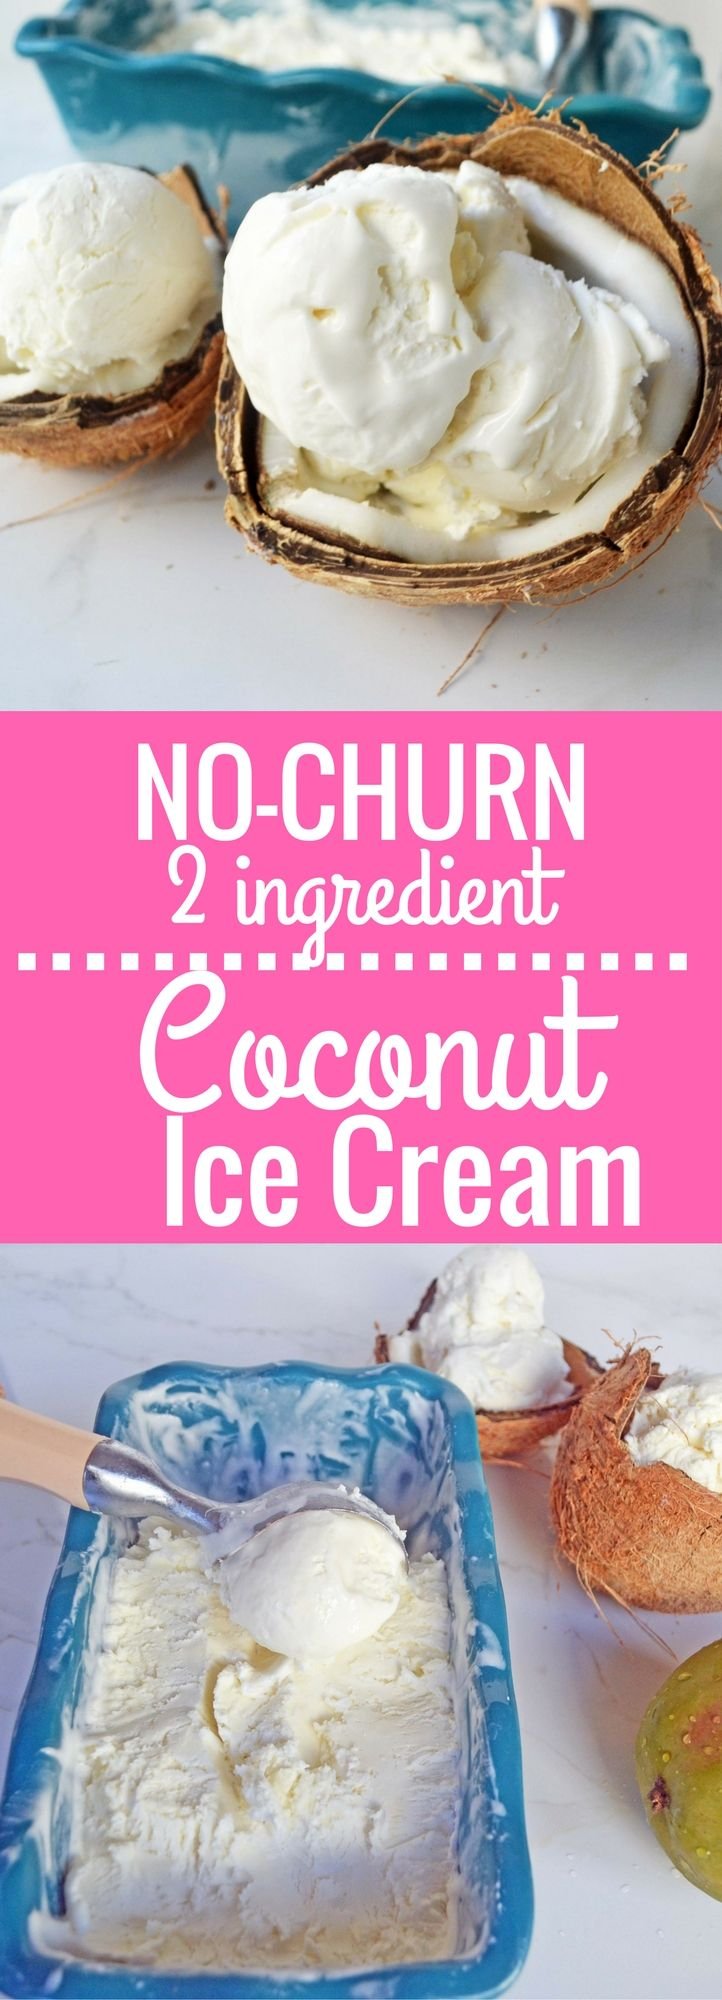 Homemade No-Churn Coconut Cream Ice Cream made with only two ingredients. Super easy creamy coconut ice cream using only canned coconut milk and heavy cream.  www.modernhoney.com